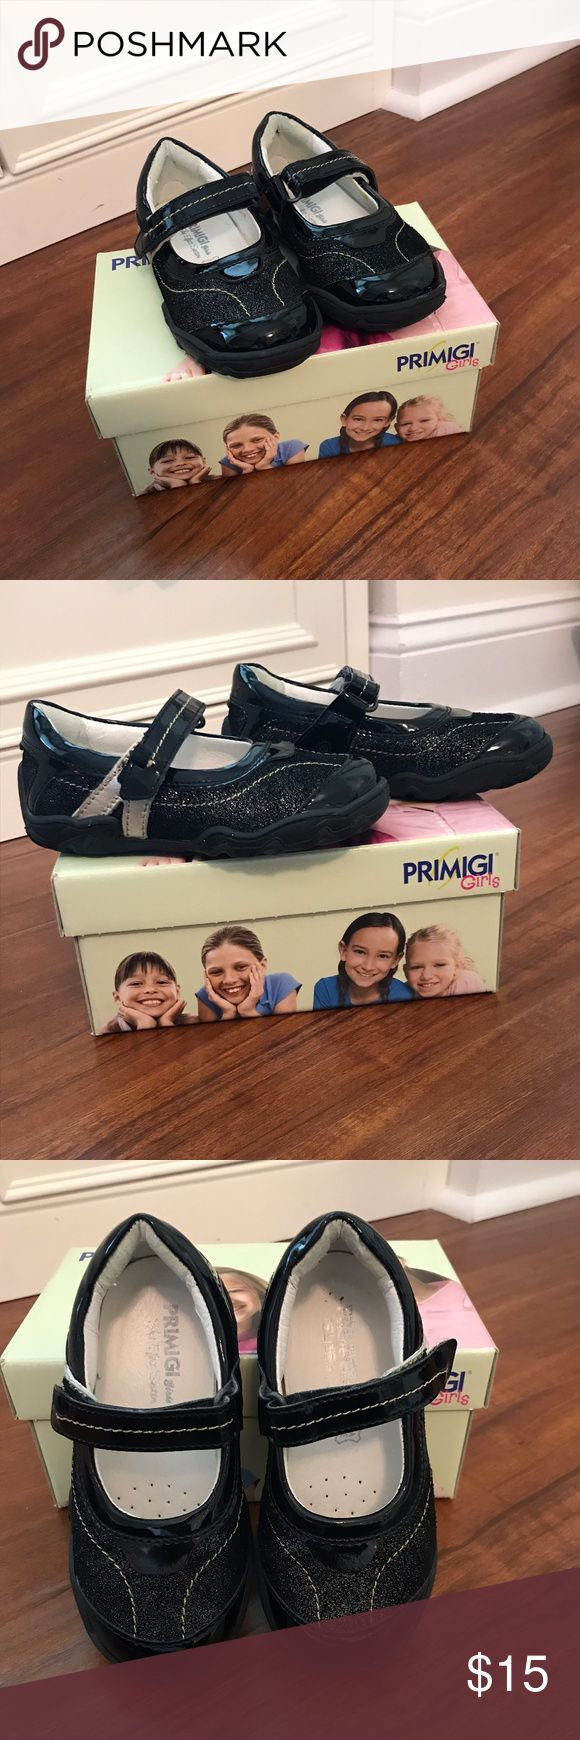 Primigi Phoebe Mary Janes Black Baby Sz 7 These Primigi Phoebe mary janes in black (Eur 24/approx US 7) are cute and casual for dress and play.   With synthetic upper and lining, metallic black is complemented by patent leather and gold accents.  Has Velcro® strap for easy on and off, removable insole and a flexible rubber sole. Removable insole. Primigi Shoes Baby & Walker